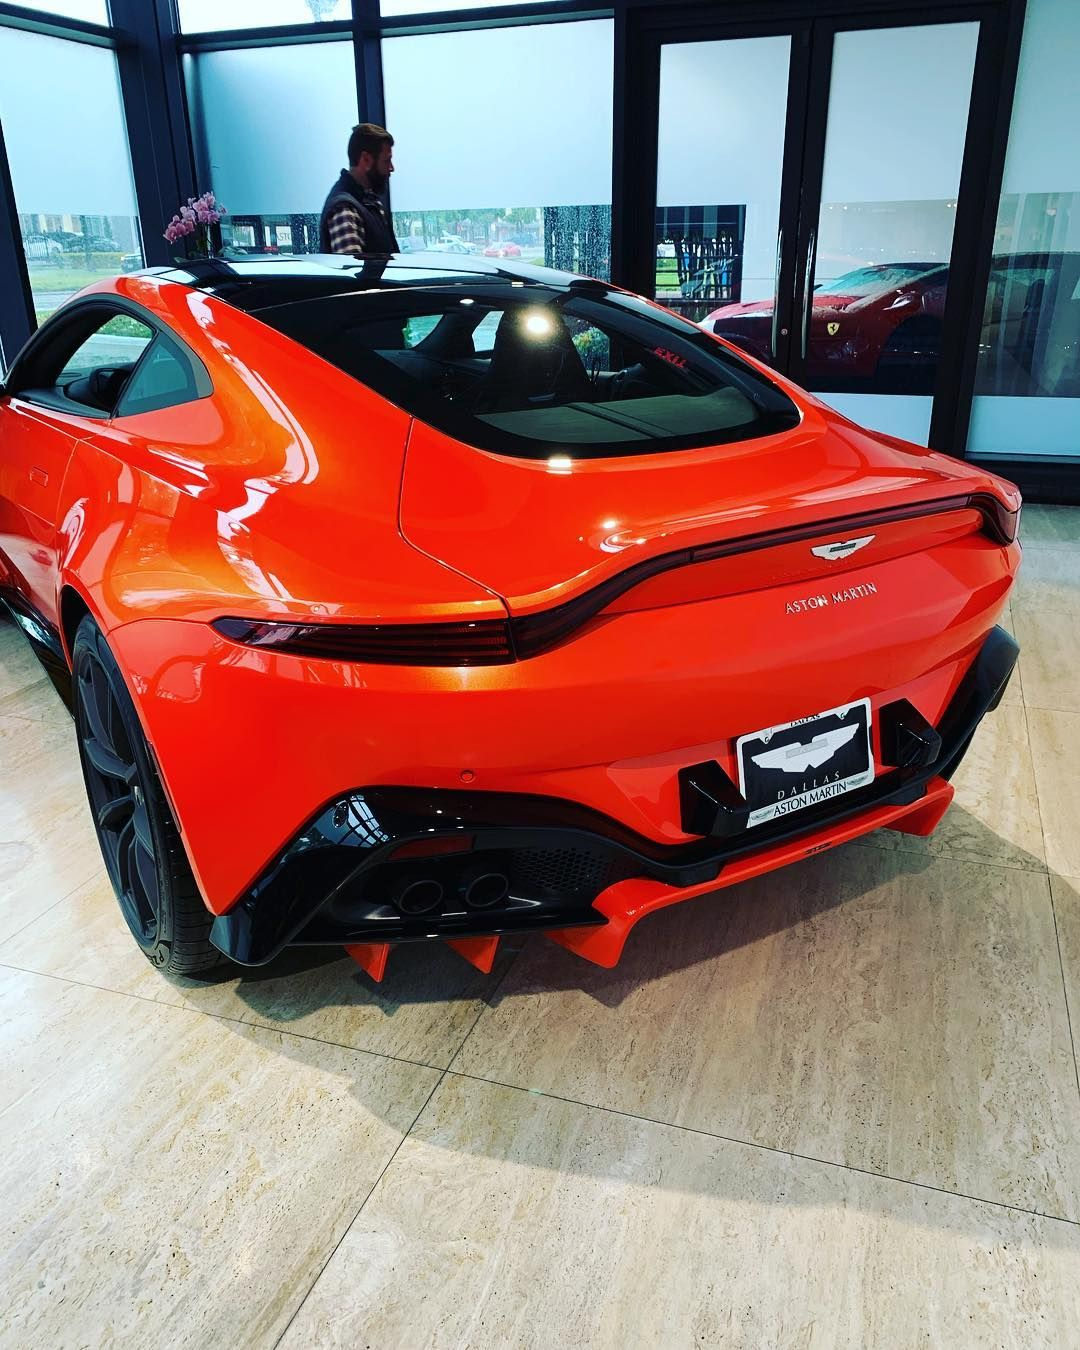 "Jack Cooper Spiritas on Instagram: ""Love This Color? @js4speed @astonmartinlagonda"""